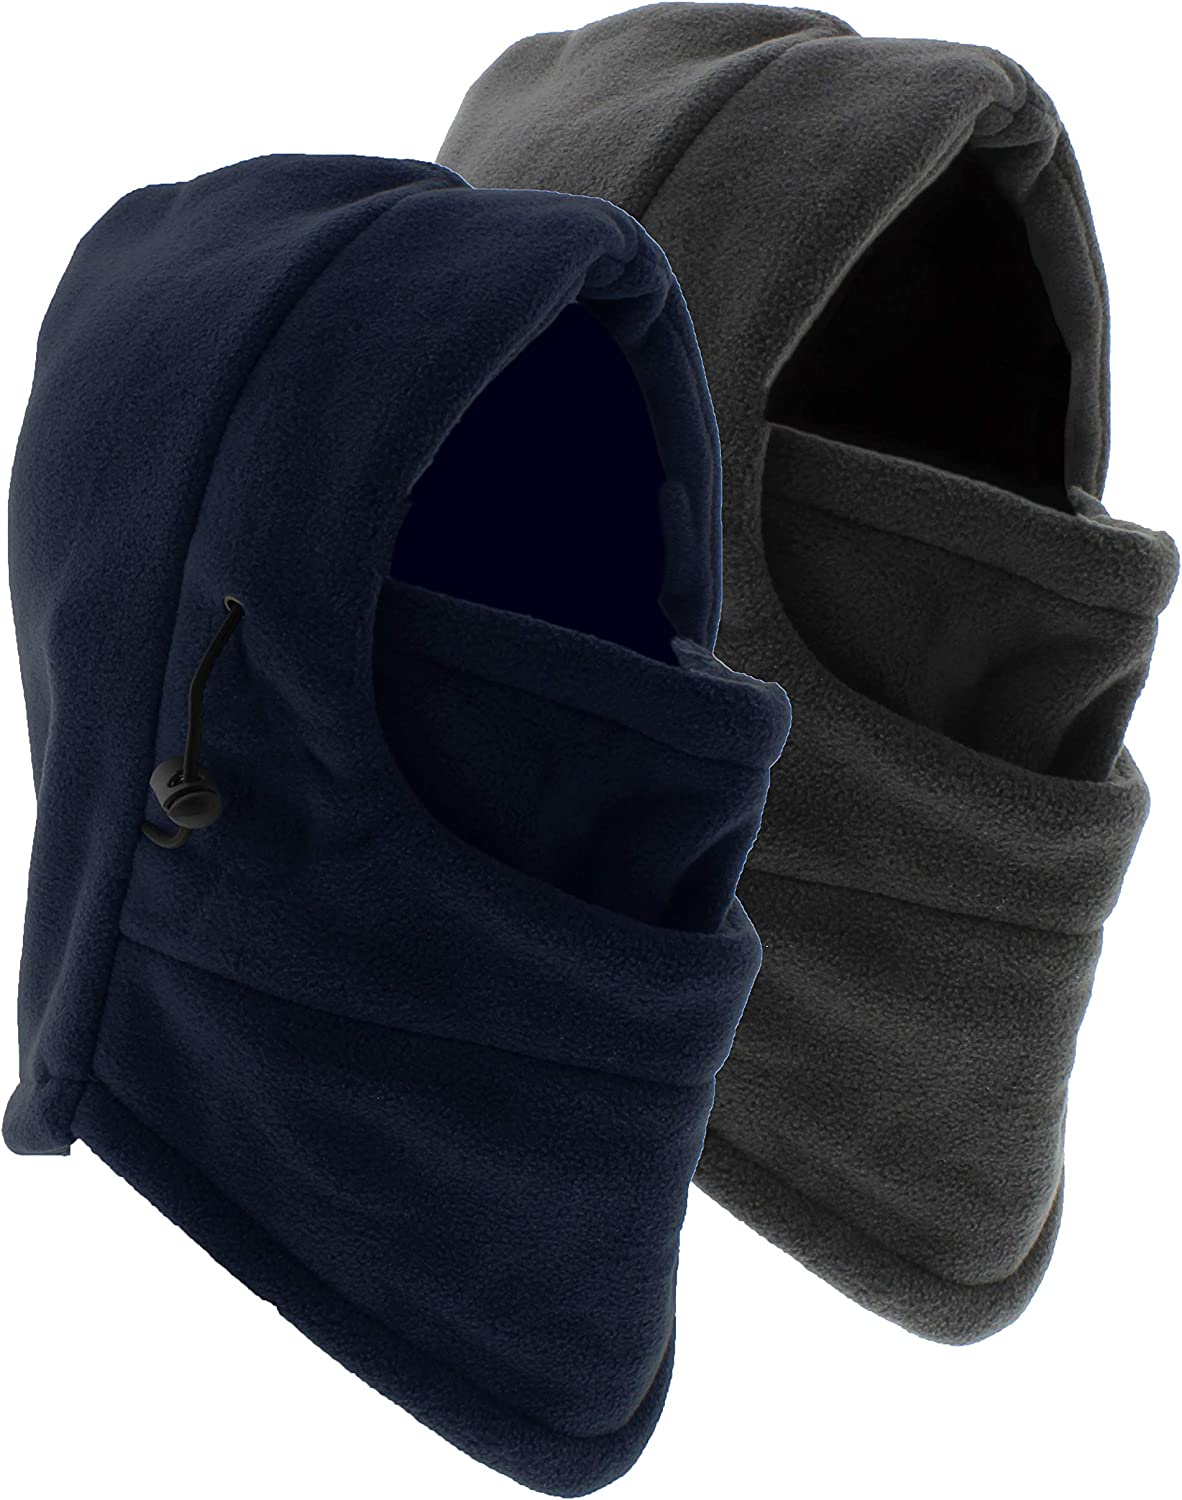 Ultra Dry Men's/Women's Thermal Fleece Balaclava, Winter and Cold Weather Full Face Mask, 2 Masks